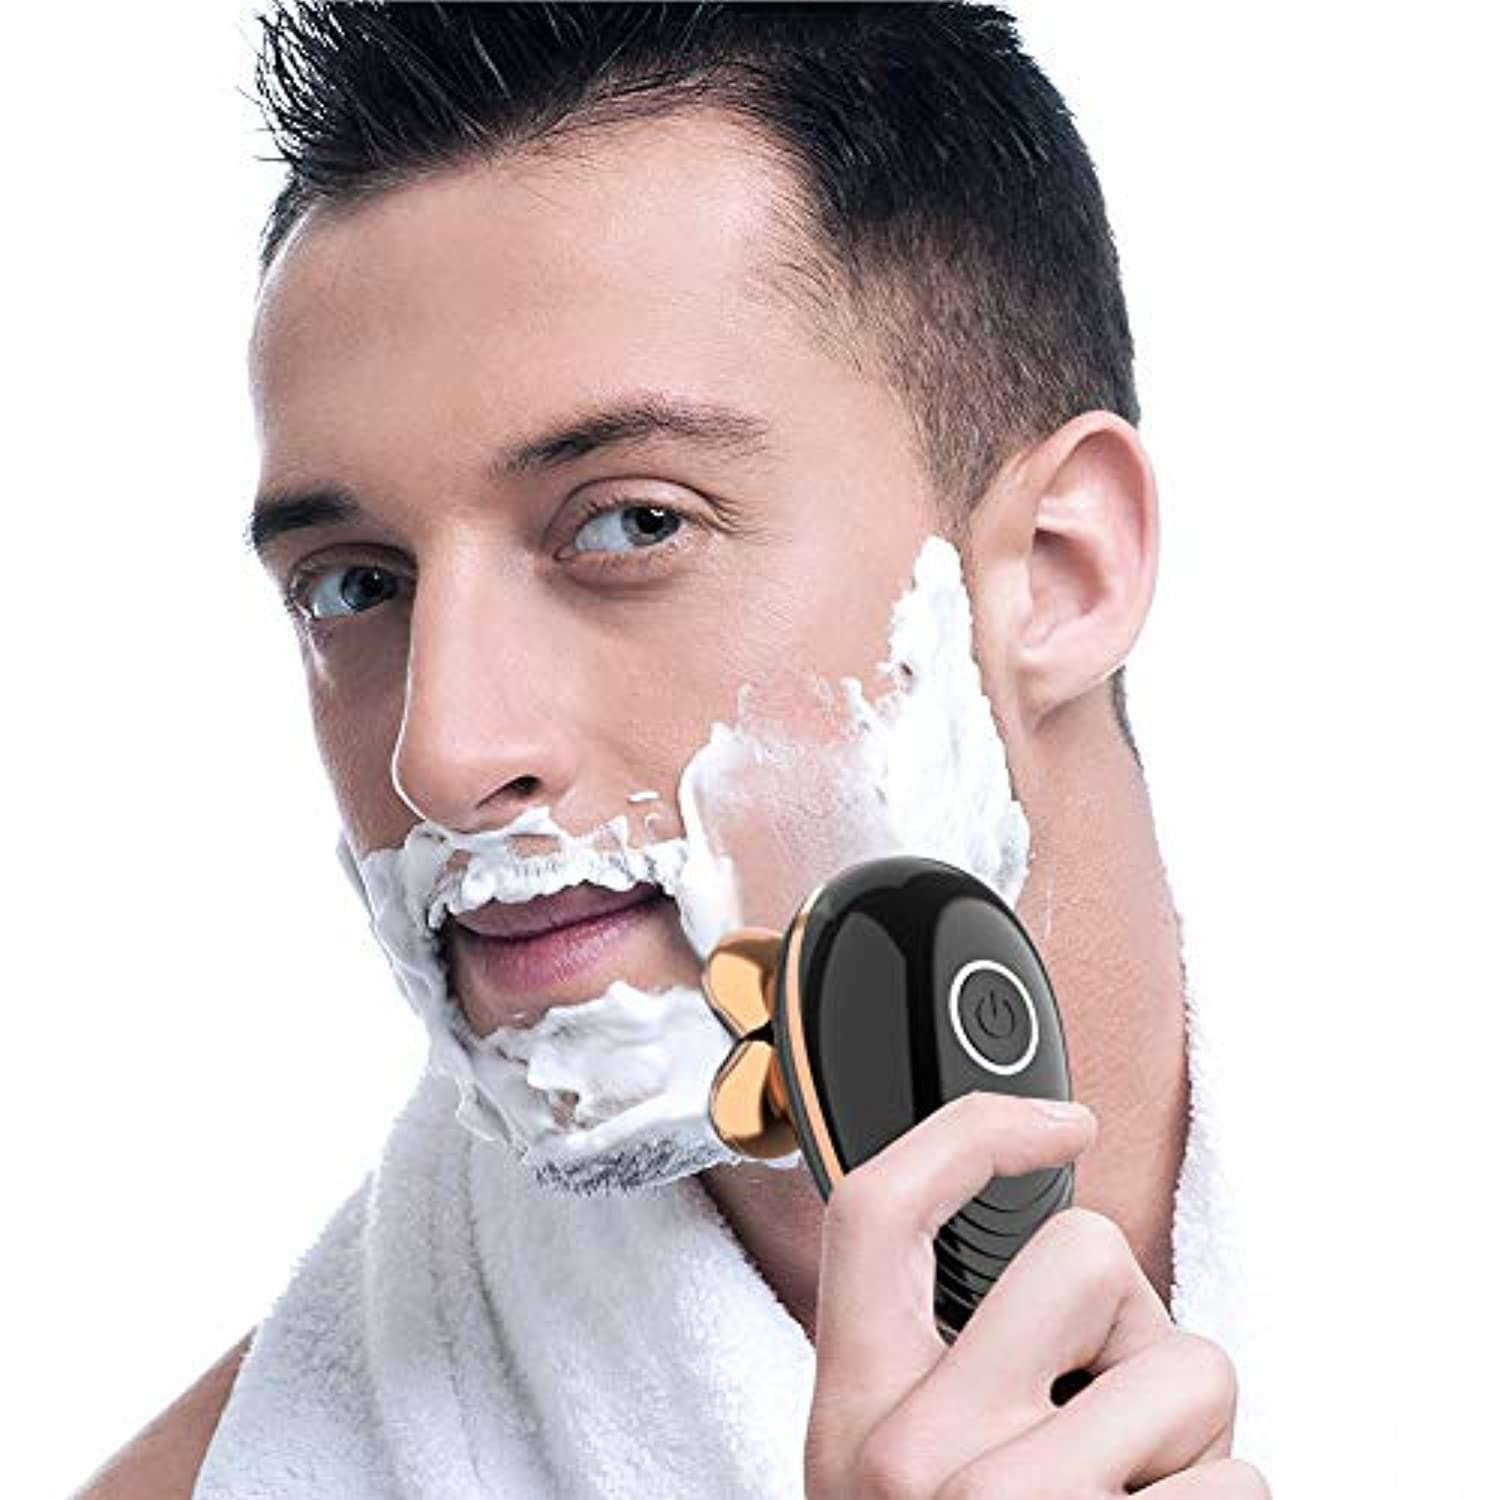 5 in 1 Floating Head Shaver for Men - smrt-life.com